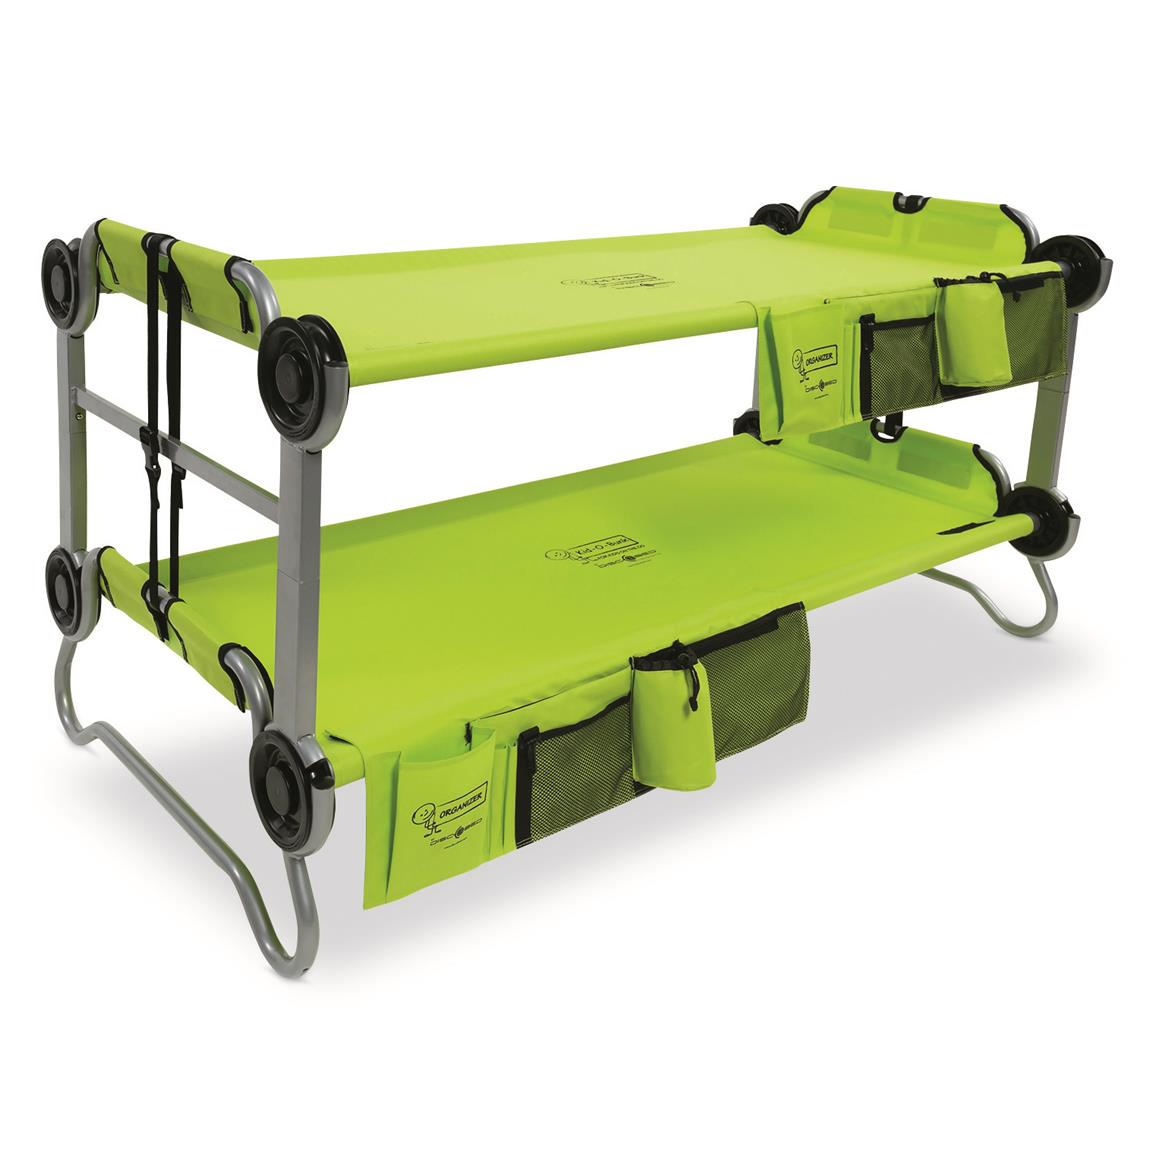 Disc-O-Bed Youth Kid-O-Bunk Portable Bunk Bed with Organizers, Lime Green